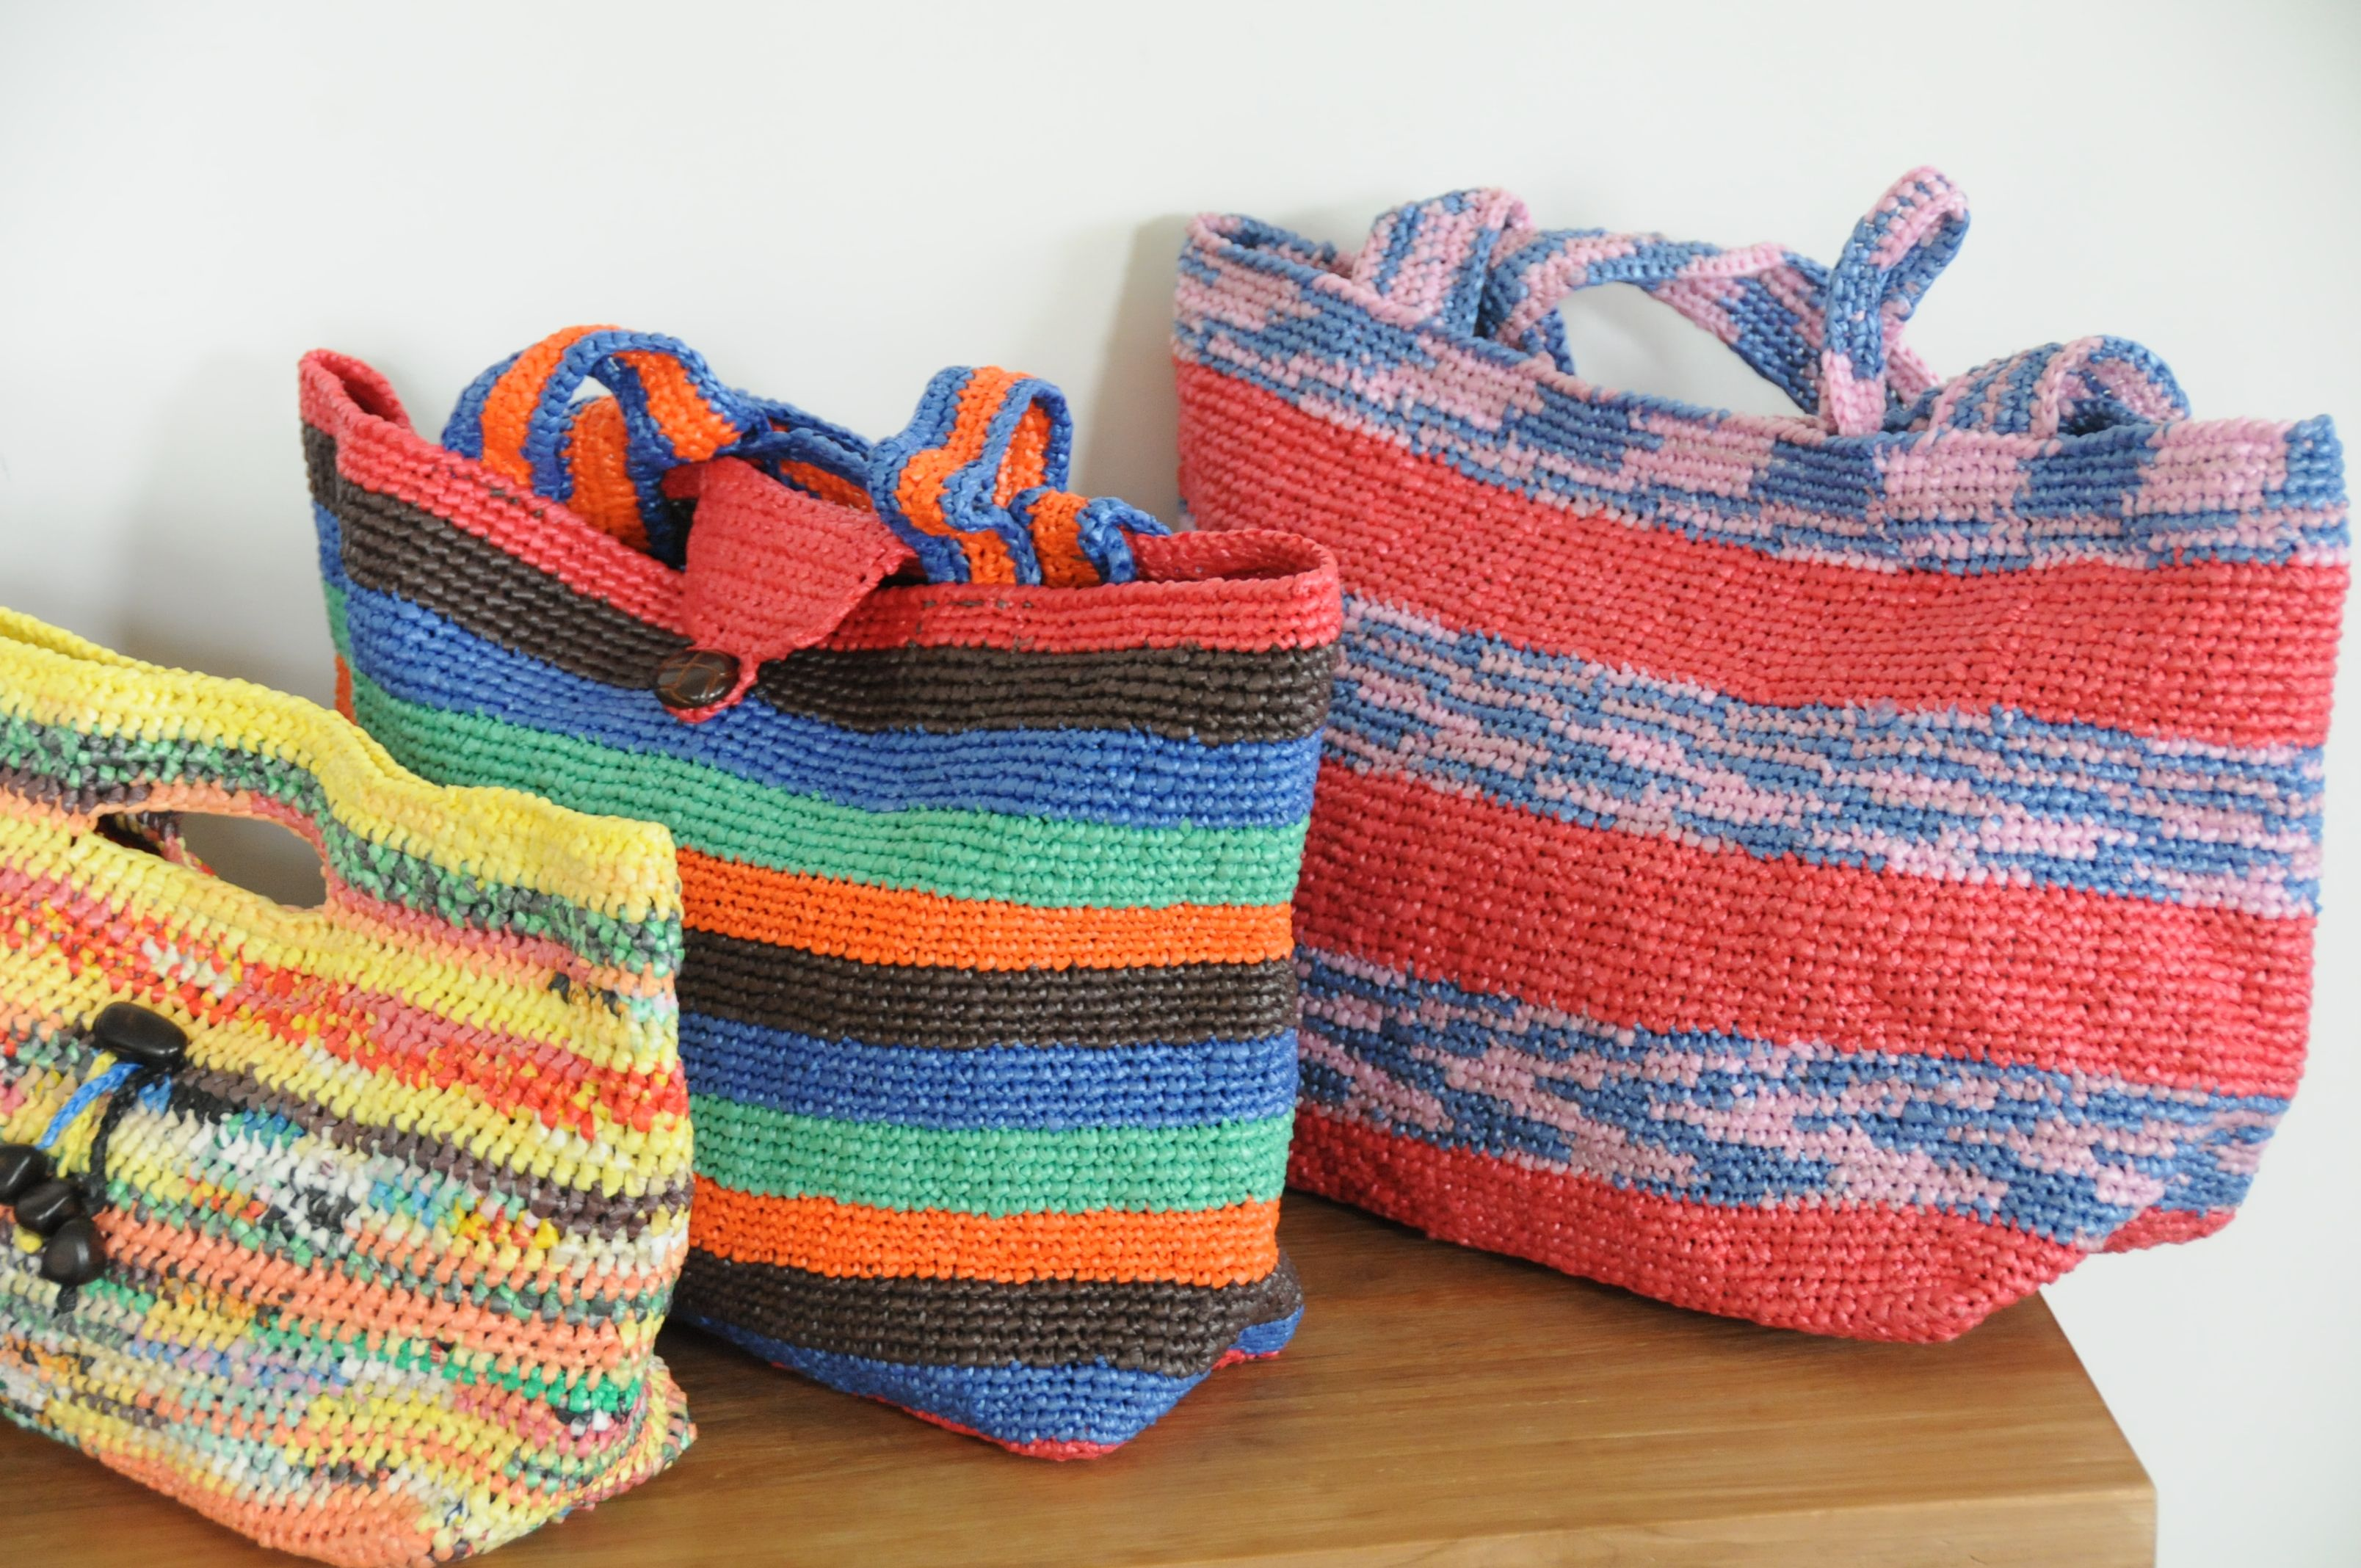 A Great Recycled Plastic Bag Crochet Project Recycled Plastic Bags Plastic Bag Crochet Plastic Bag Crafts